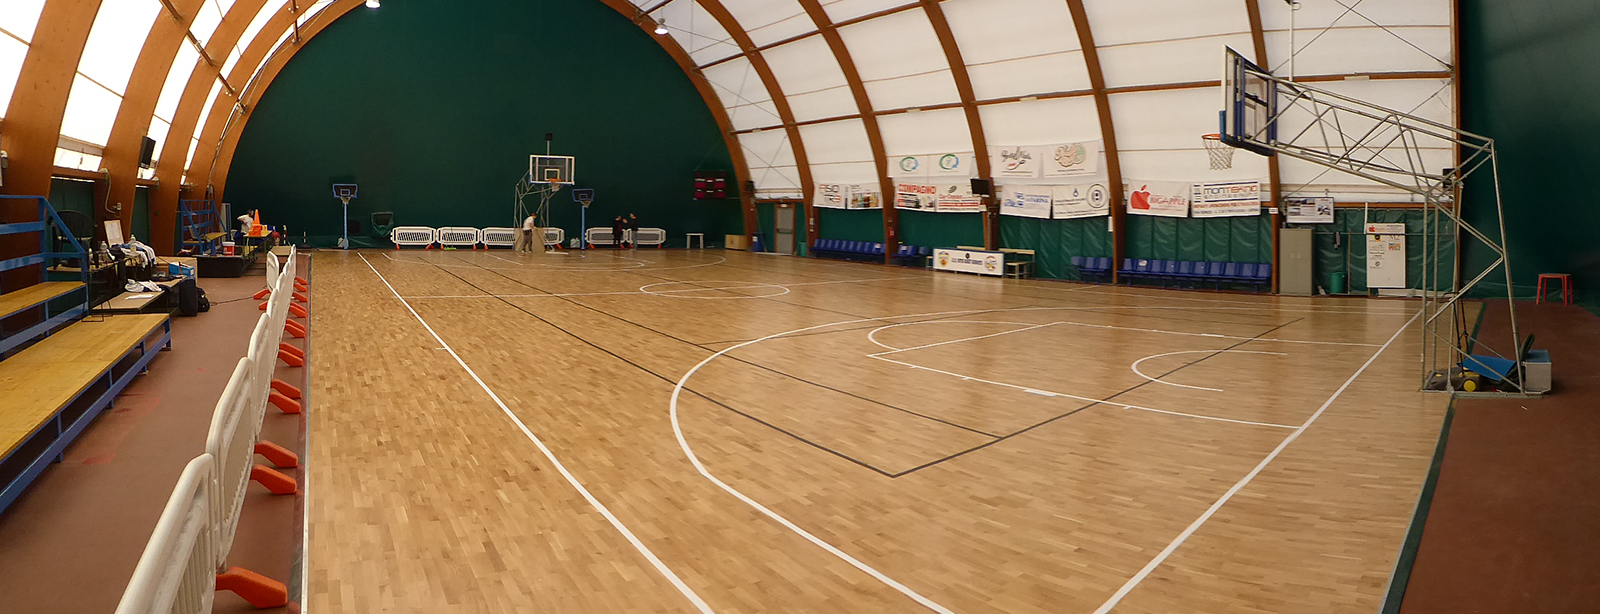 New face for the Sermoneta tensile structure: how the appearance changes with a sports parquet